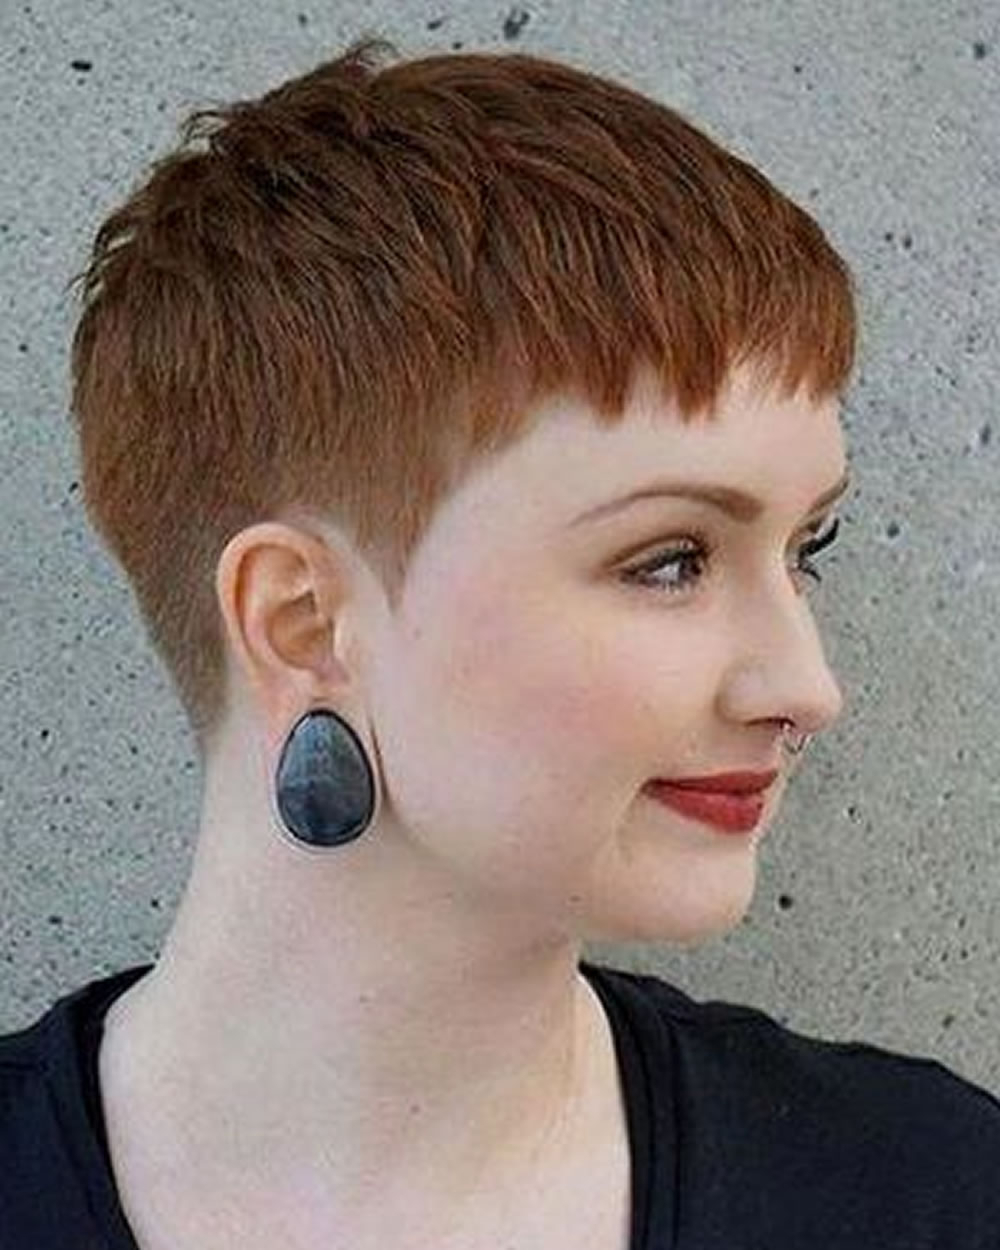 Pixie Hairstyles For Round Face And Thin Hair 2018 – Hairstyles With Regard To Pictures Of Short Hairstyles For Round Faces (View 16 of 25)